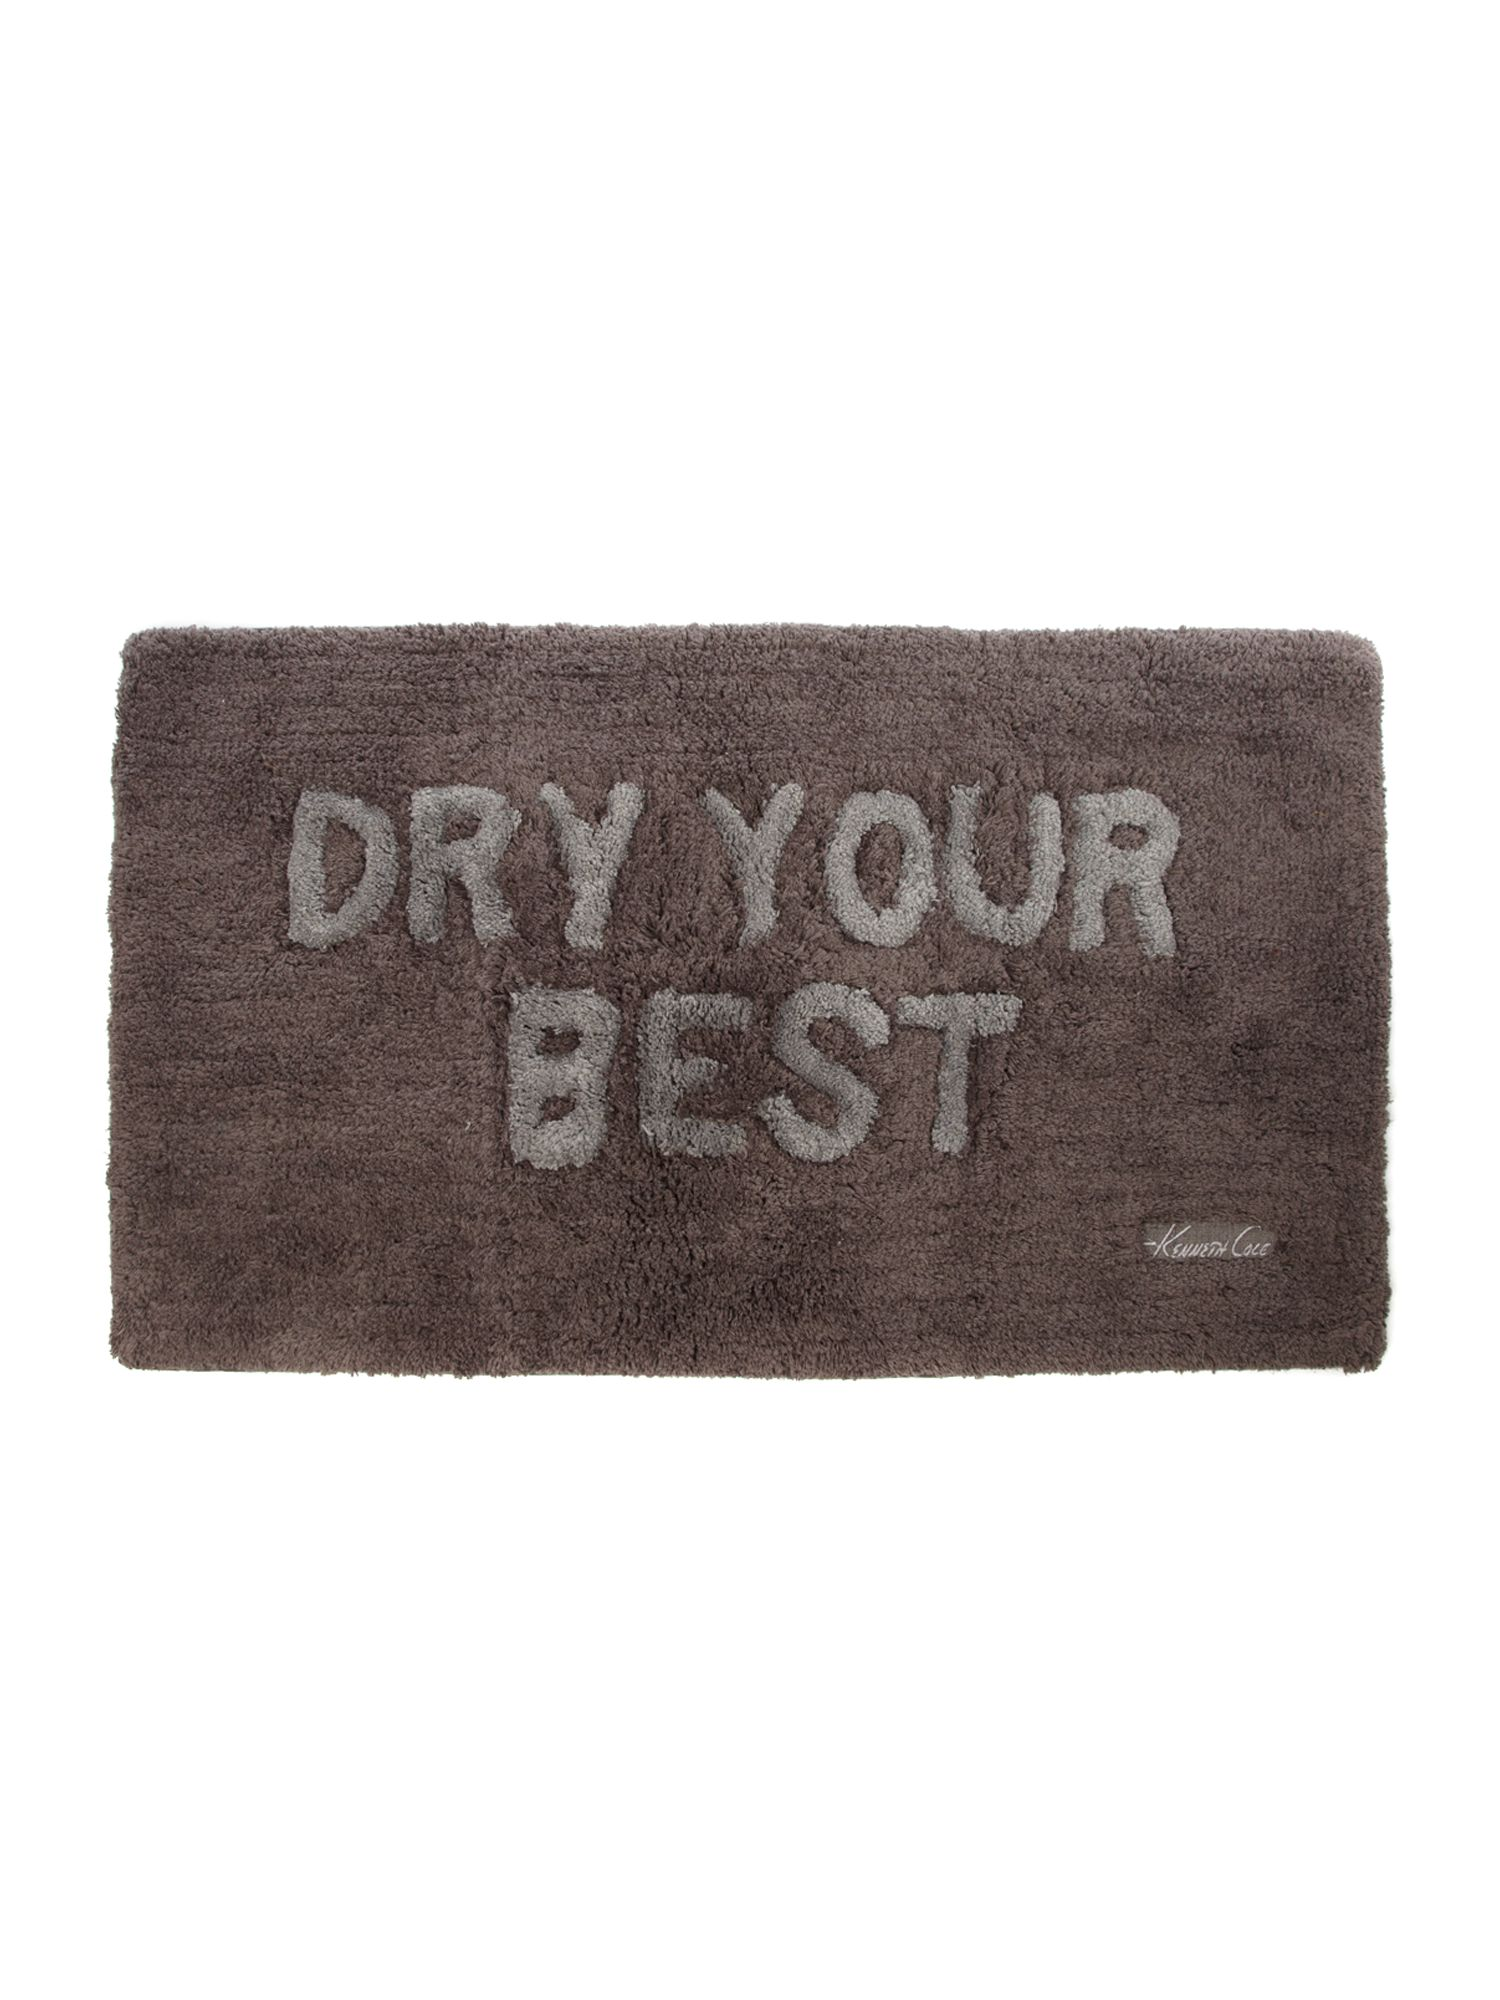 Dry Your Best bath mat